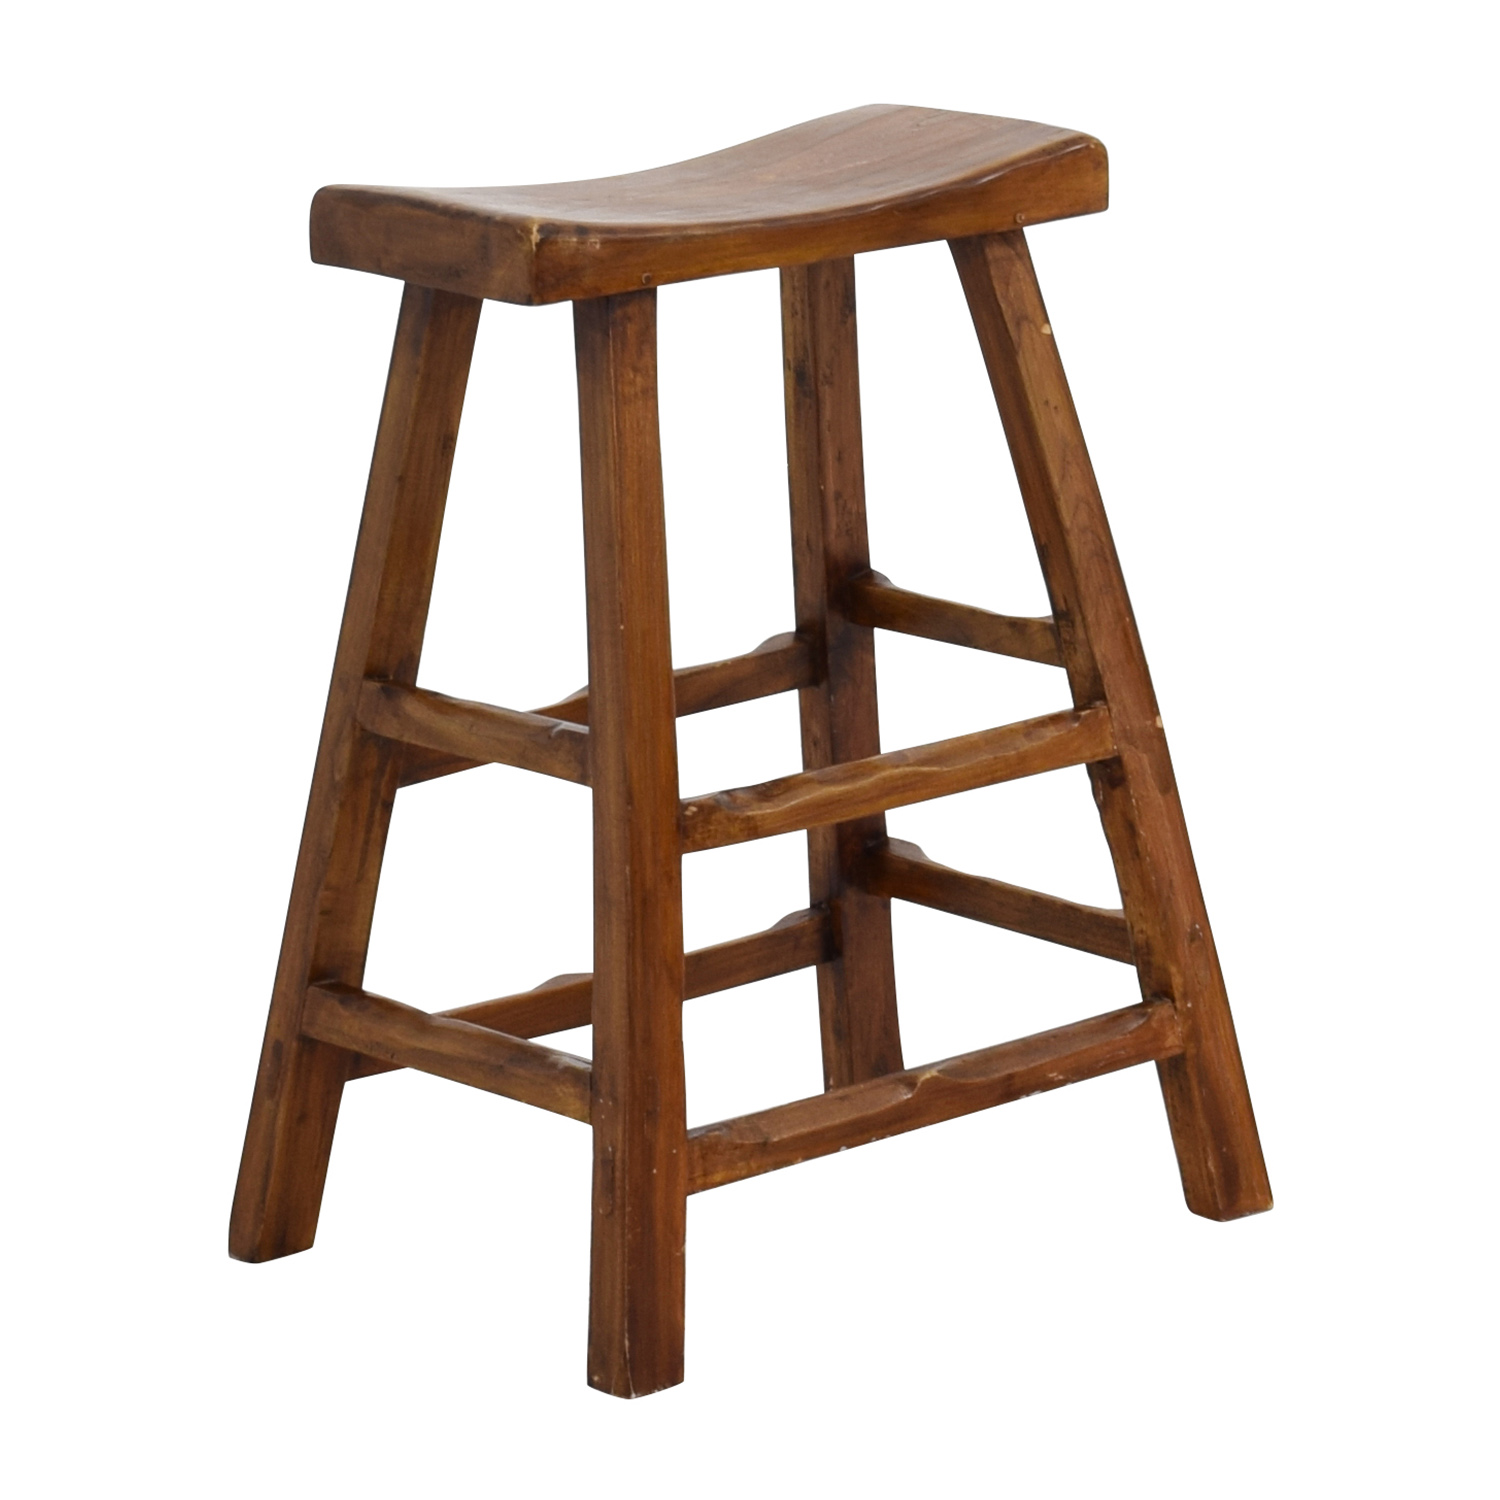 Wooden Furniture Stools ~ Off rustic wood saddle seat counter stool chairs